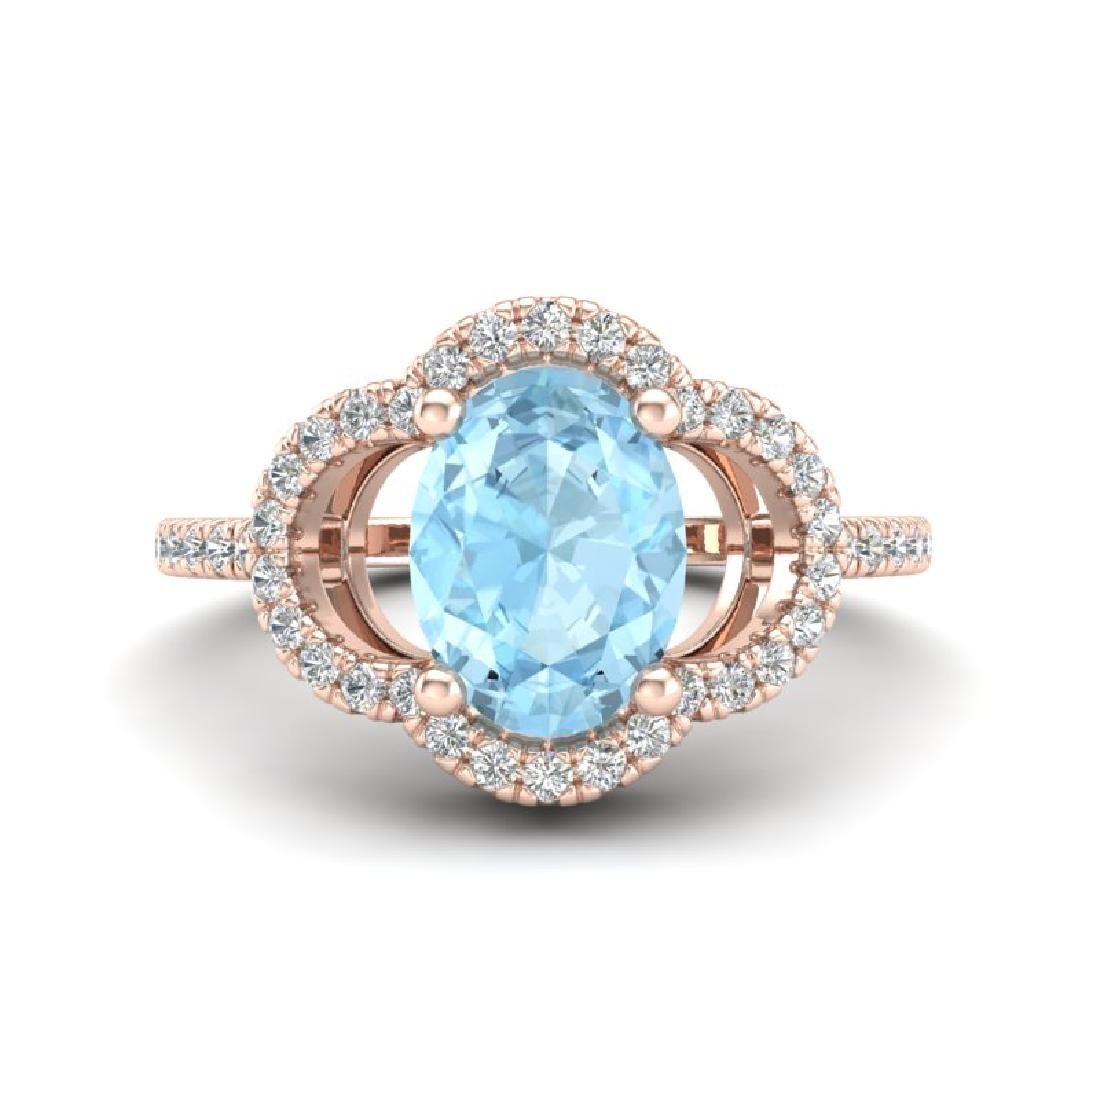 2 CTW Aquamarine & Micro Pave VS/SI Diamond Ring 10K